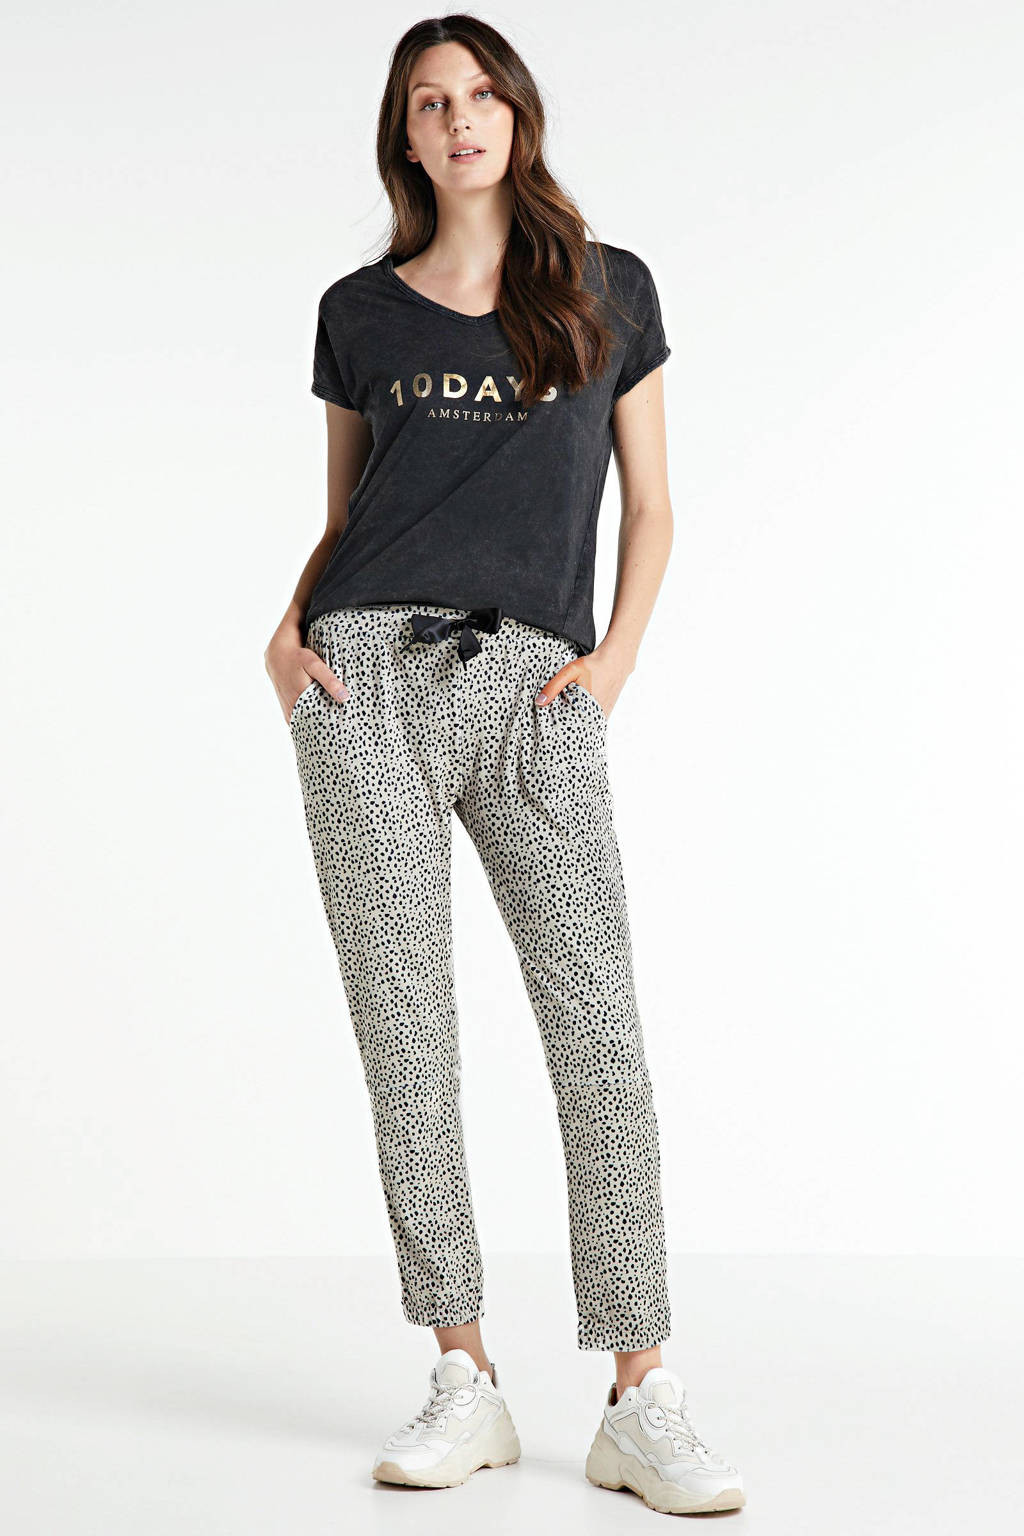 10DAYS slim fit broek met all over print ecru/zwart, Ecru/zwart